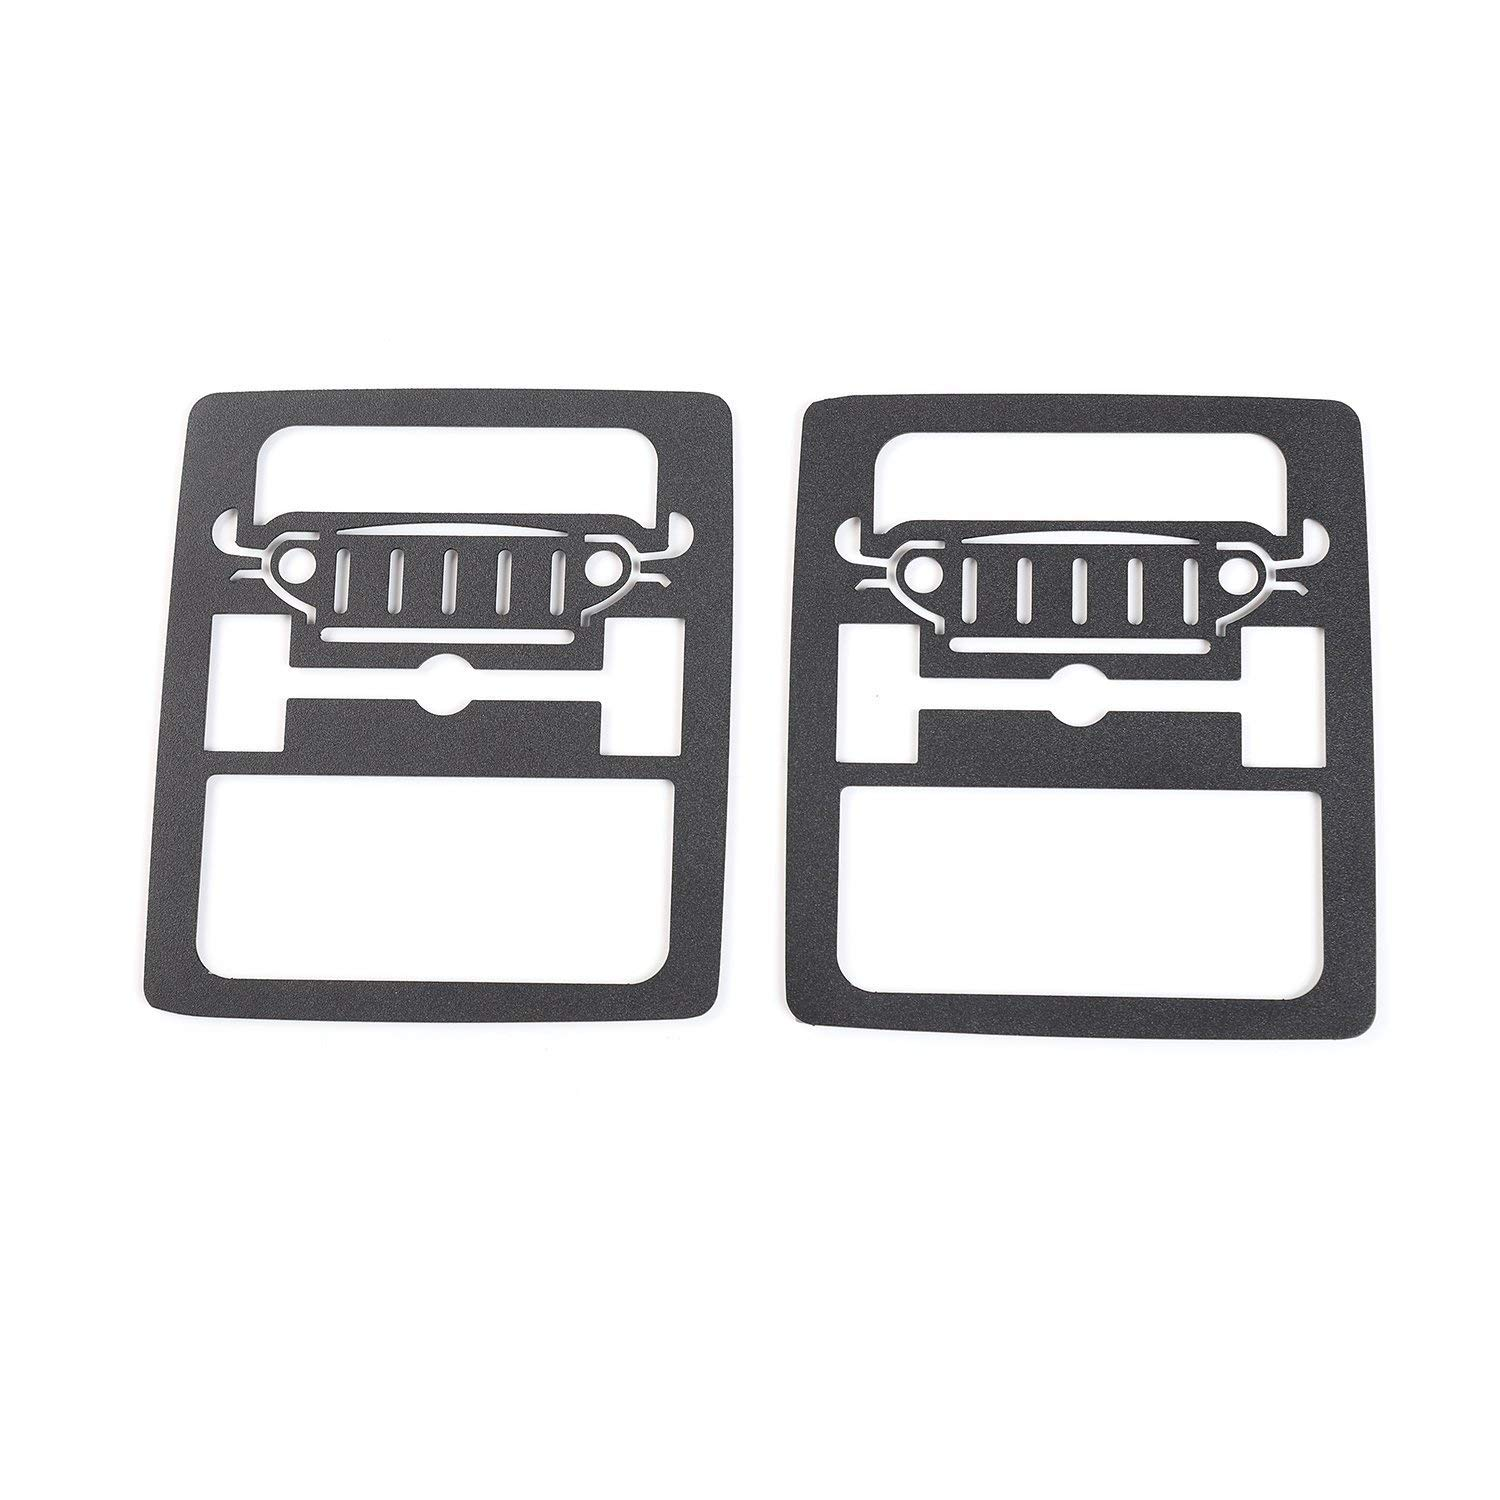 Rugged Off Road Pair JeCar Metal Tail Light Guard Cover for 2018 Jeep Wrangler JL Sport//Sports